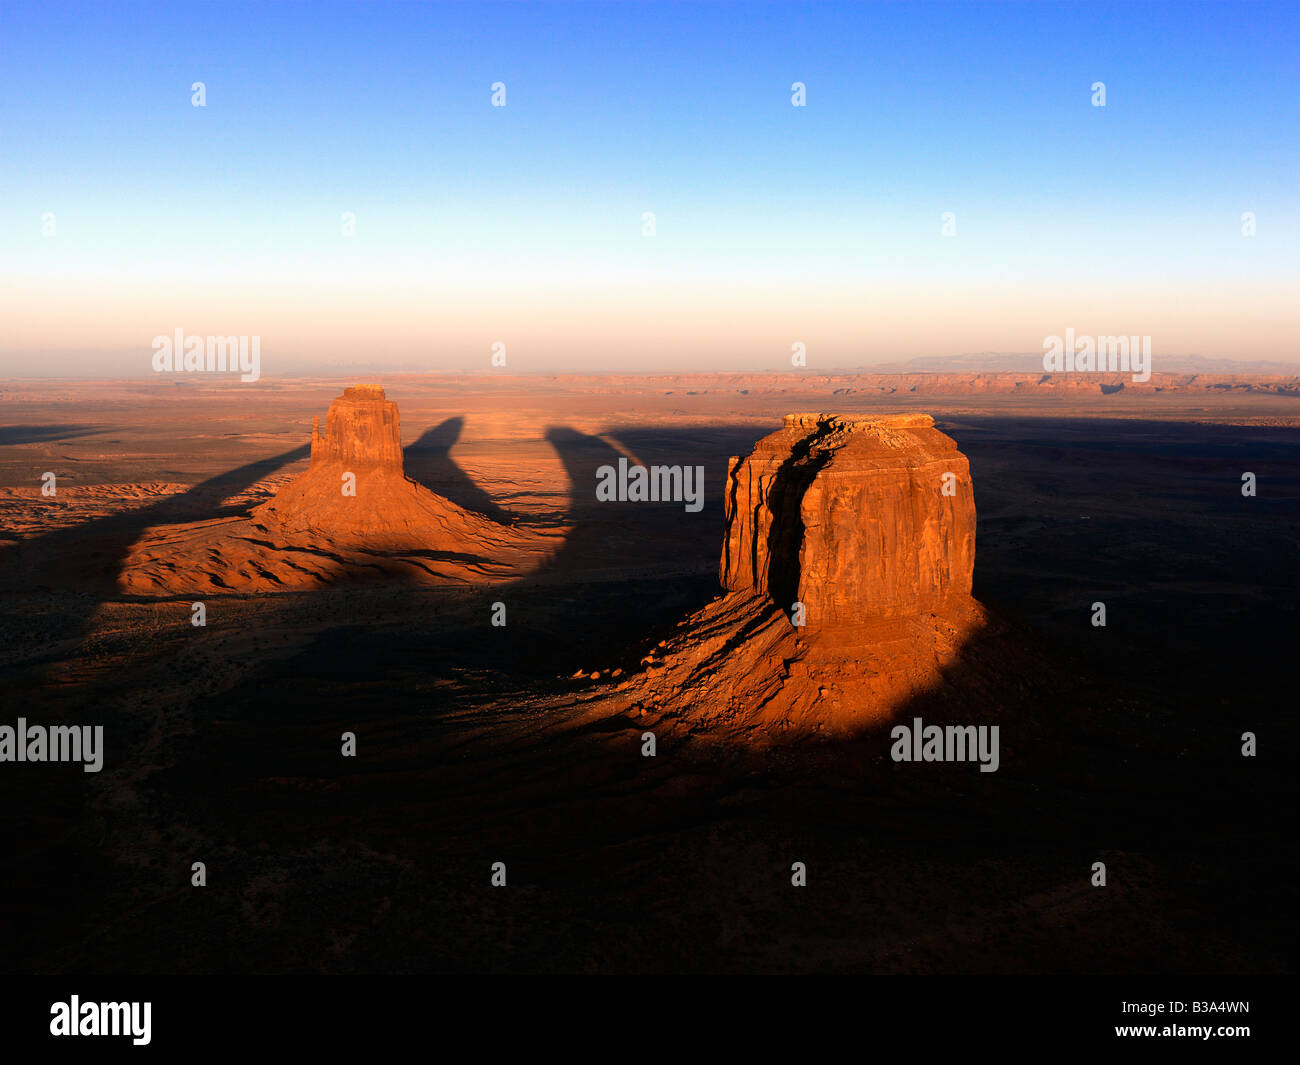 Scenic landscape of mesas in Monument Valley near the border of Arizona and Utah United States Stock Photo